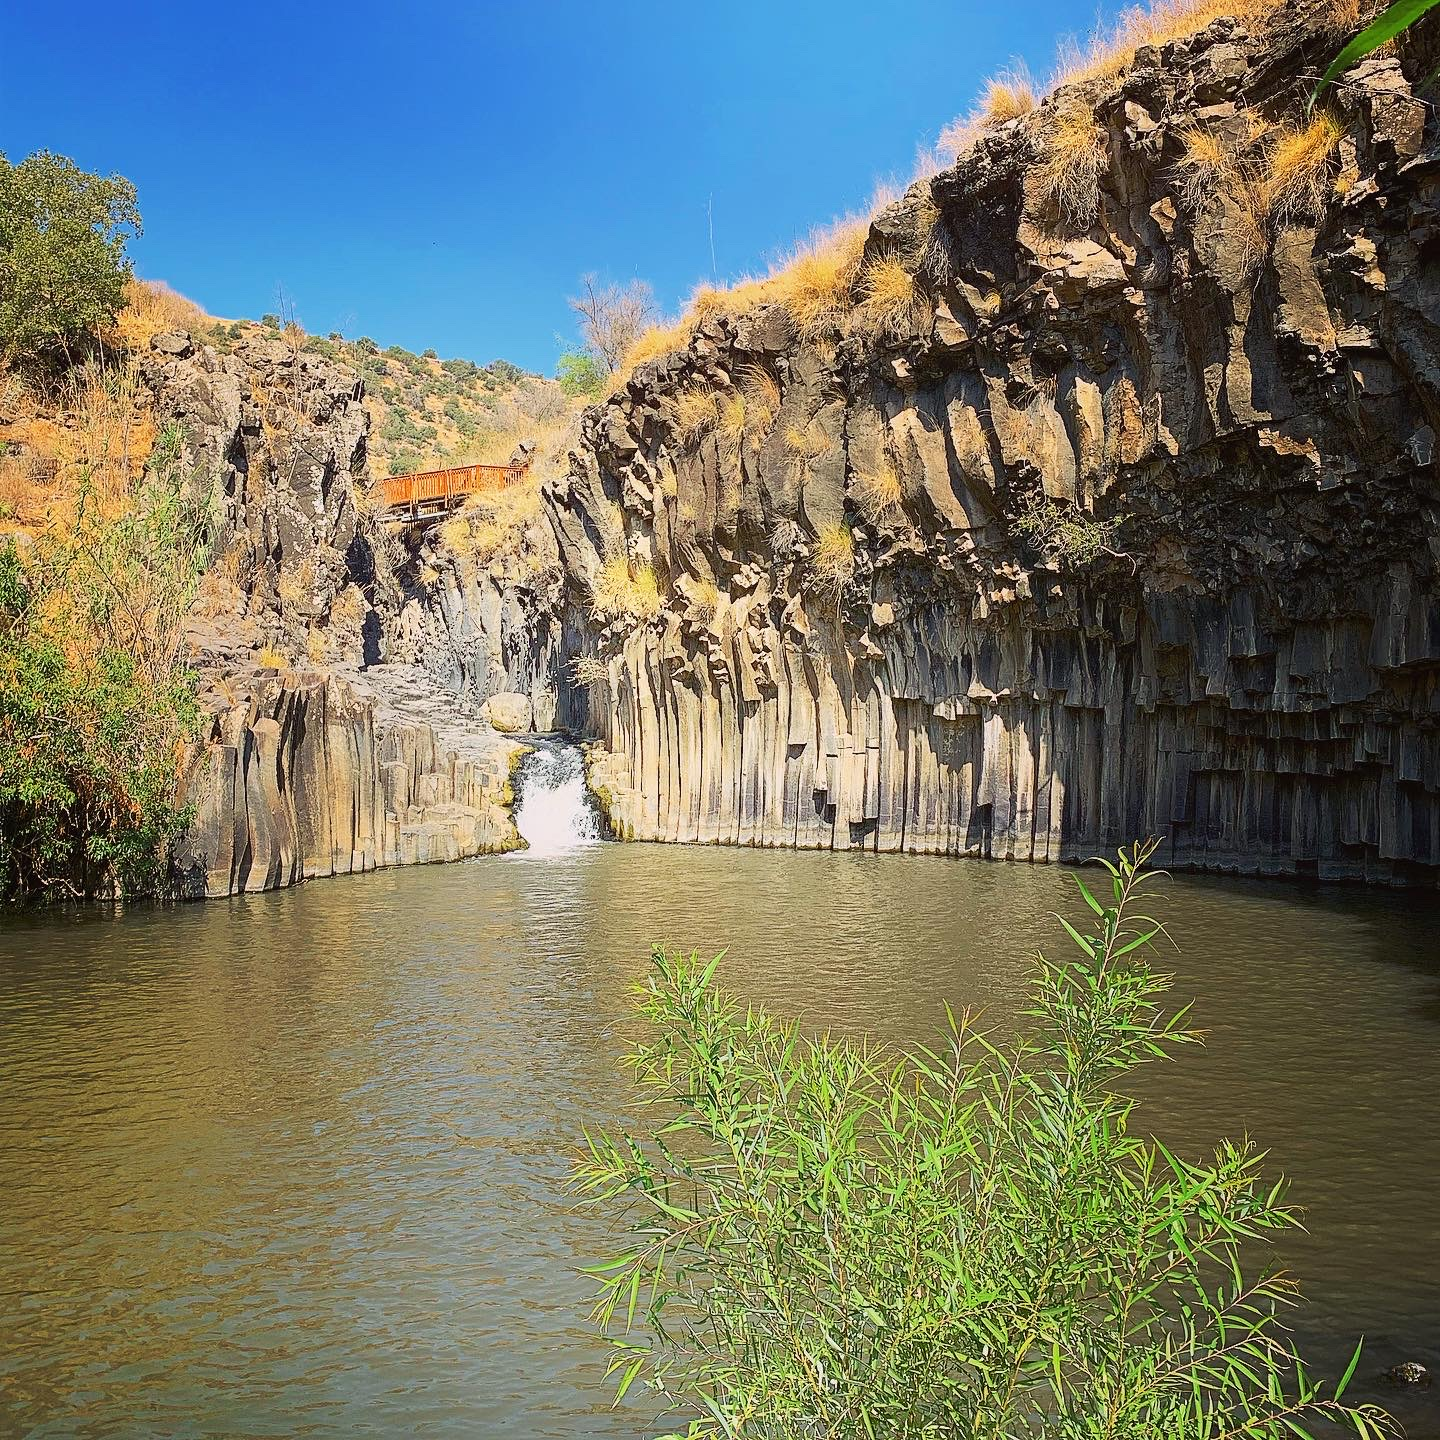 Remarkable geological formations at the Hexagon Pool in the Golan Heights